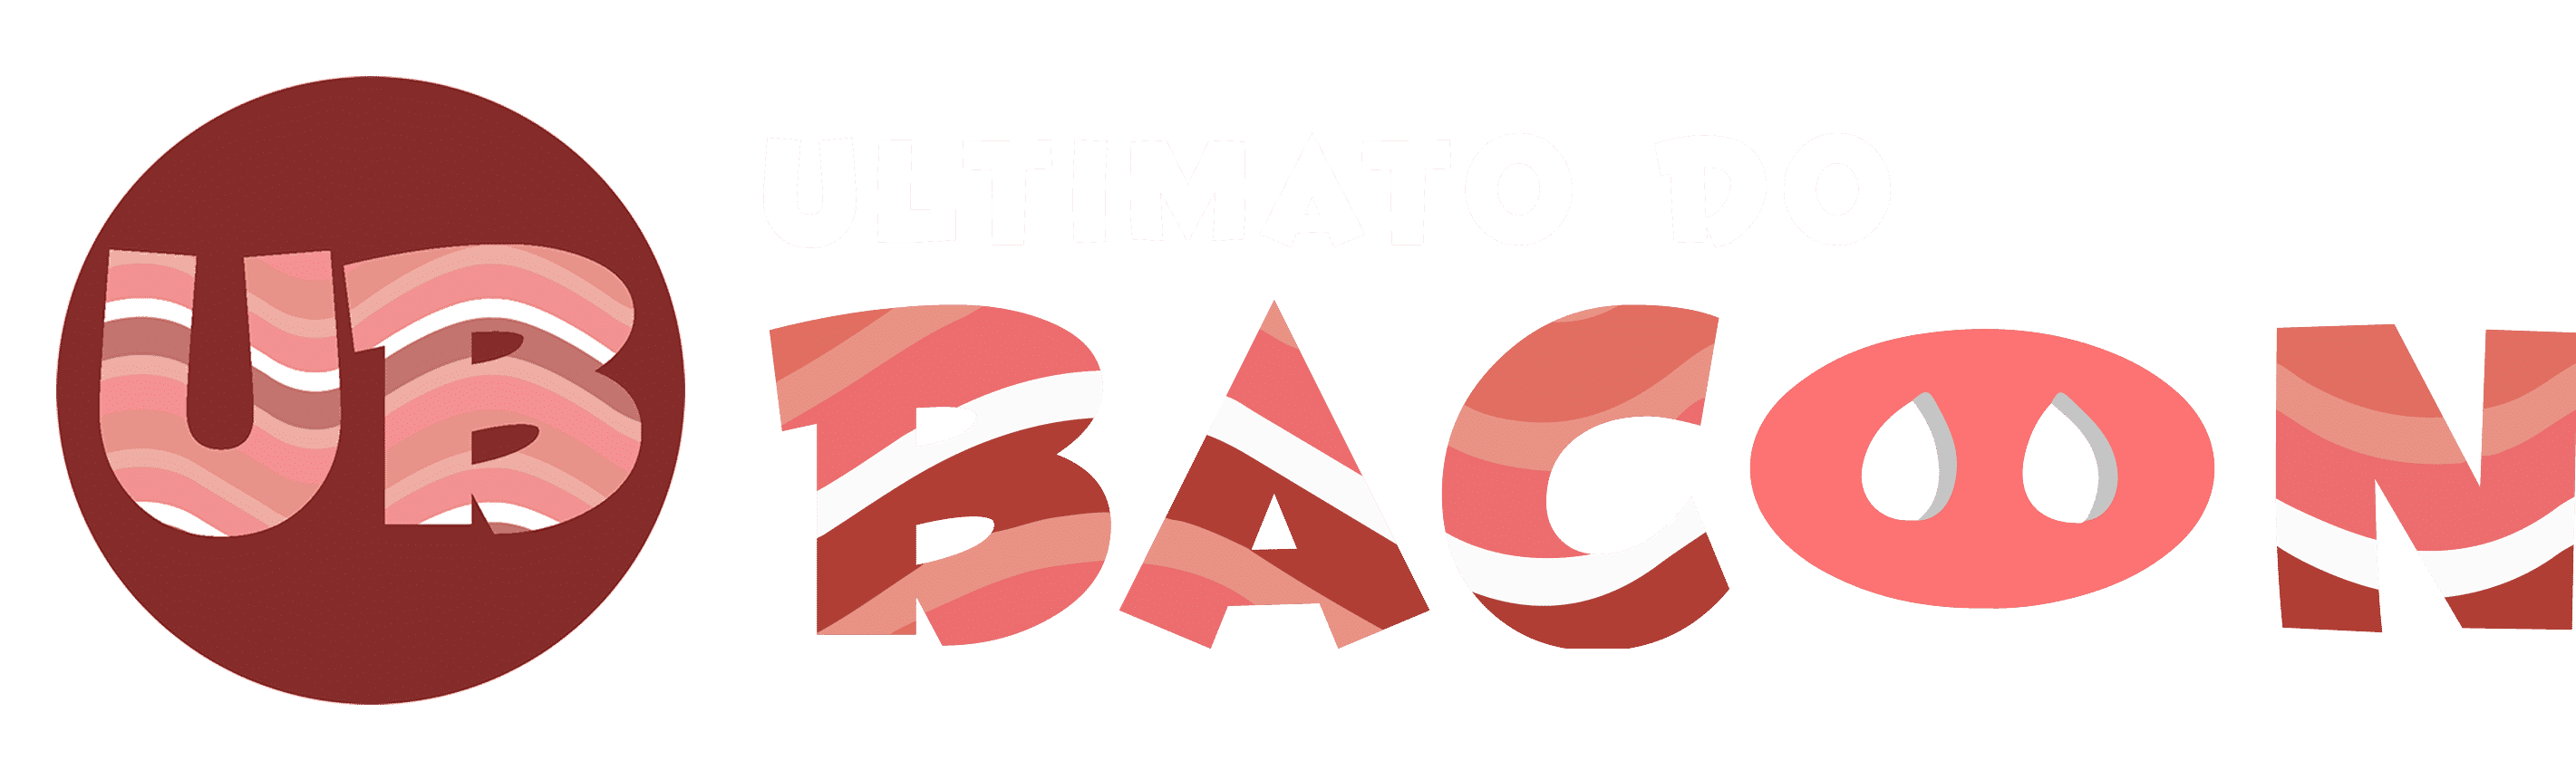 Ultimato do Bacon